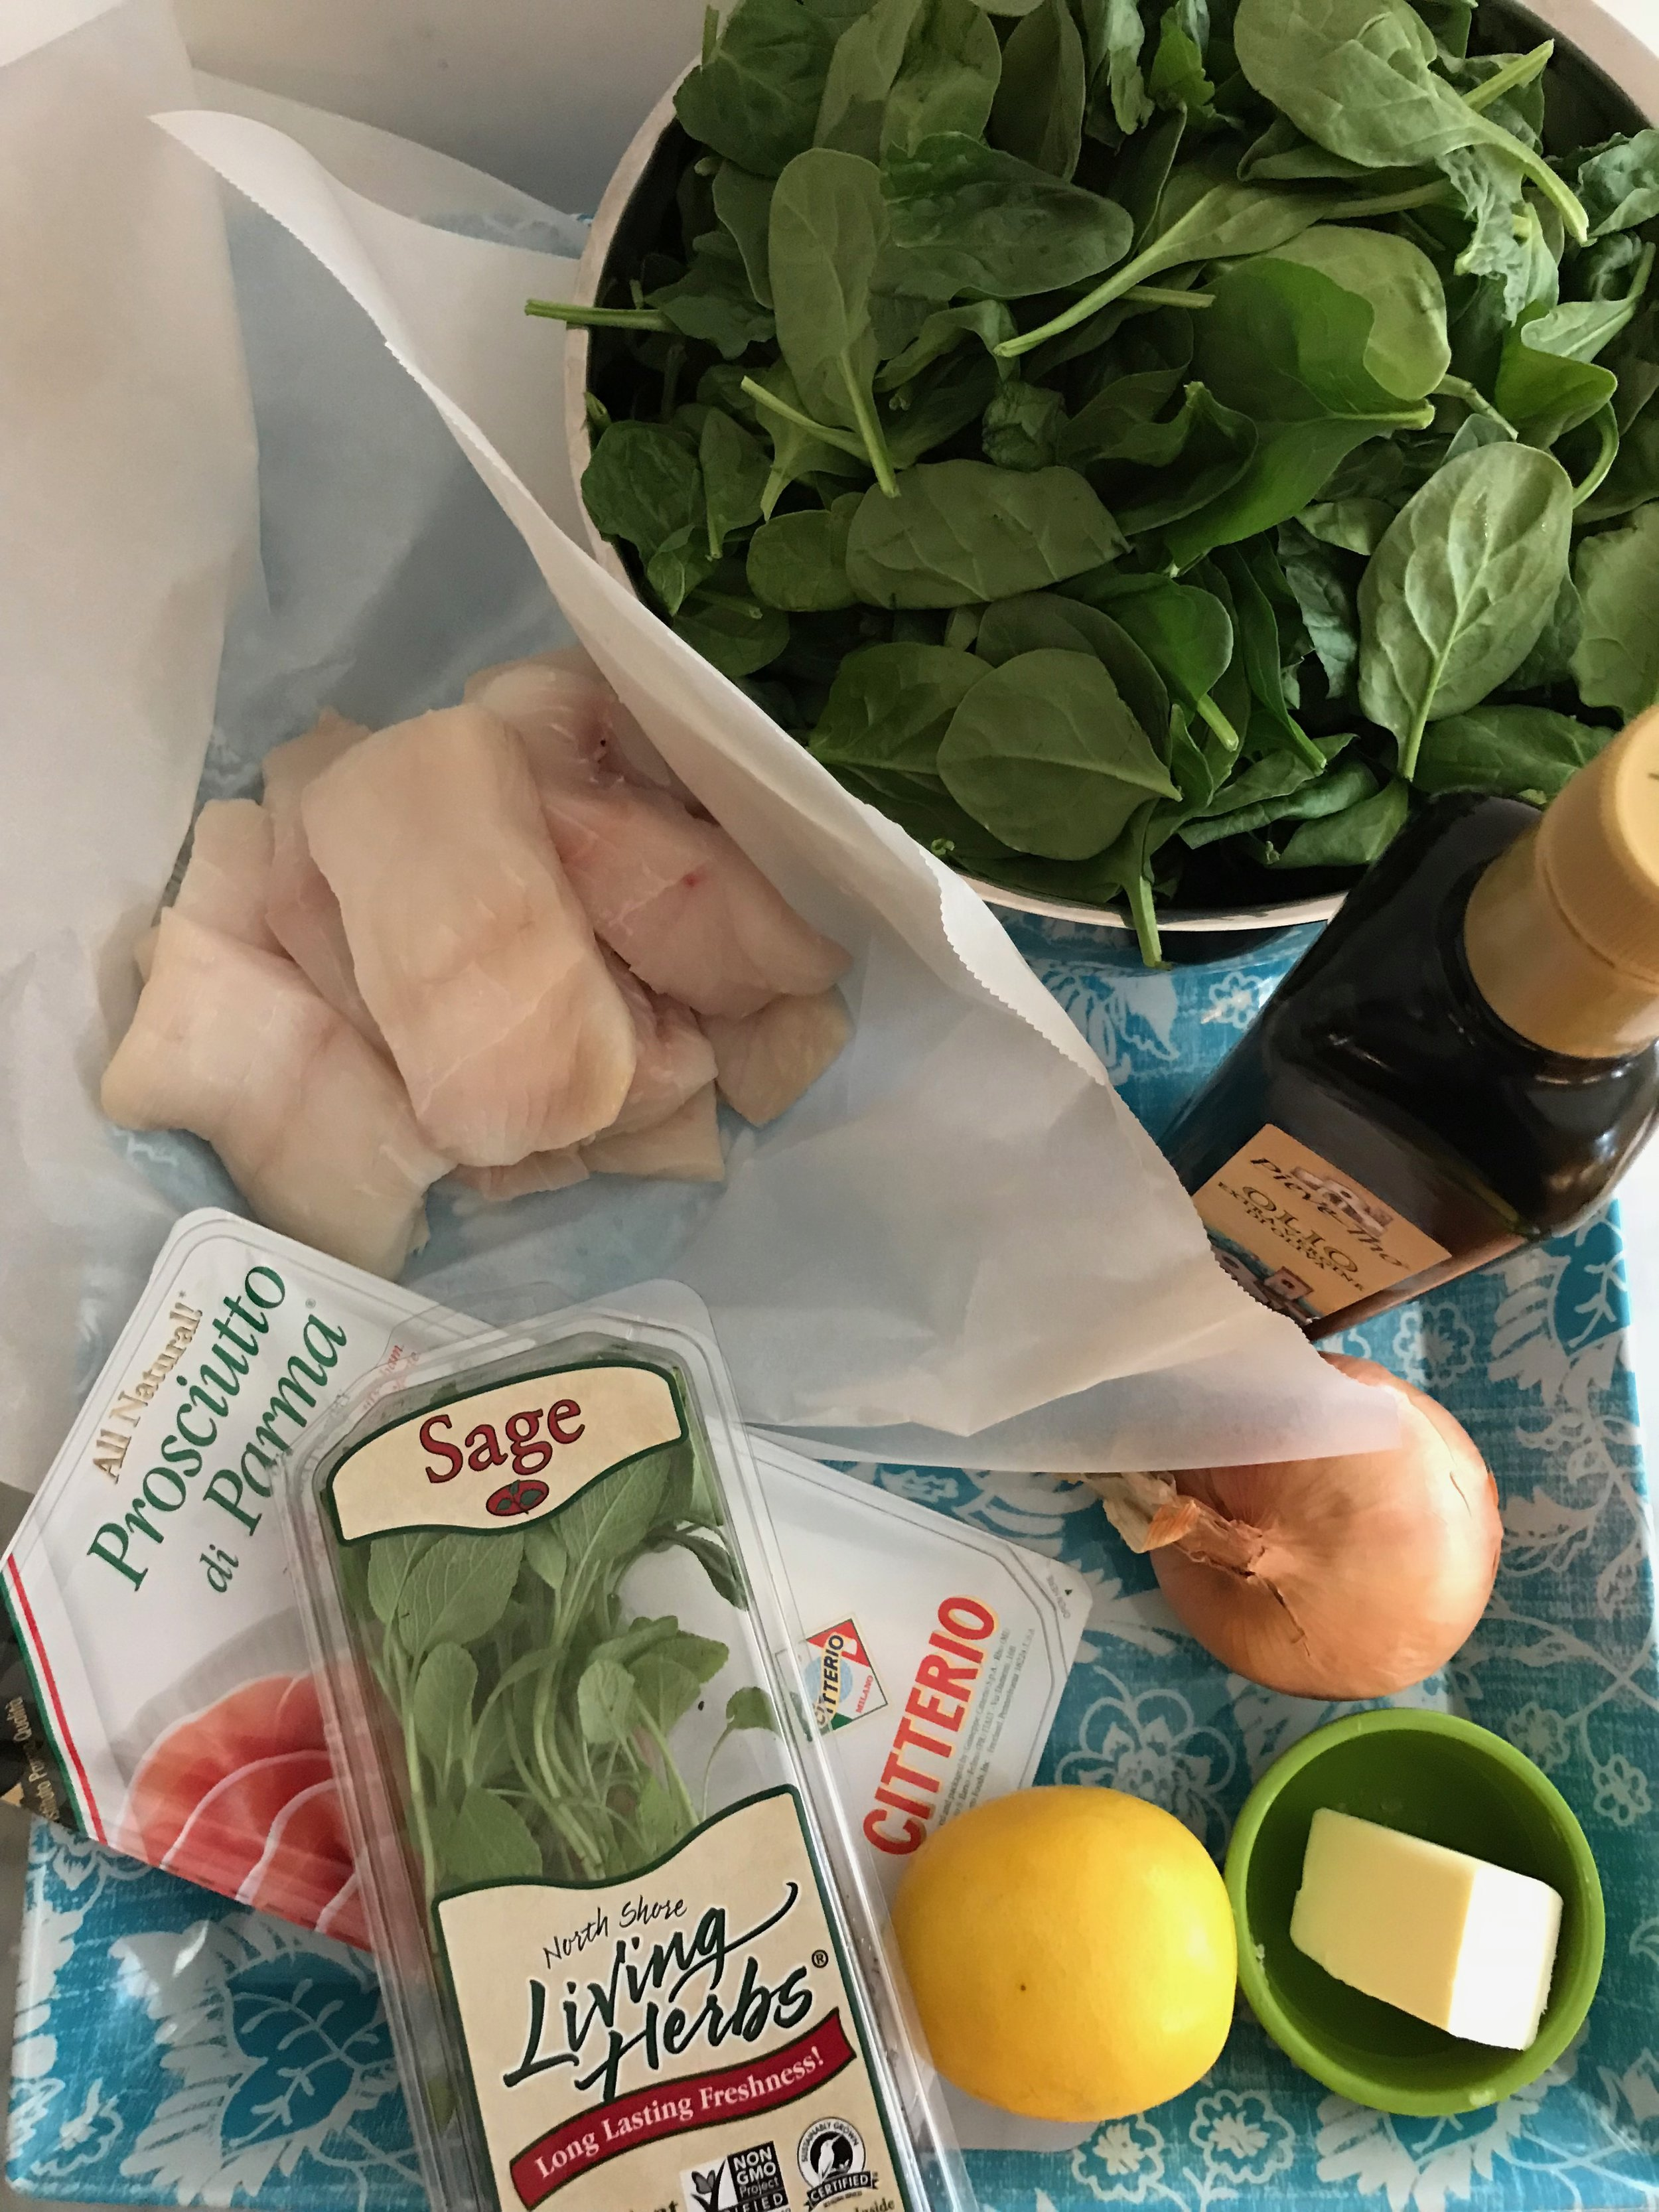 Ingredients - Fish:8 6 oz. skinless fish filets, about 1 inch thick8-16 leaves fresh sage8 thin slices Prosciutto di ParmaSpinach:3T olive oil1 medium onion, finely diced2 lbs. spinach (12 cups), washed, drained and slightly dampsalt and pepperSauce:3T butter3-4 fresh sage leaves4T fresh lemon juice